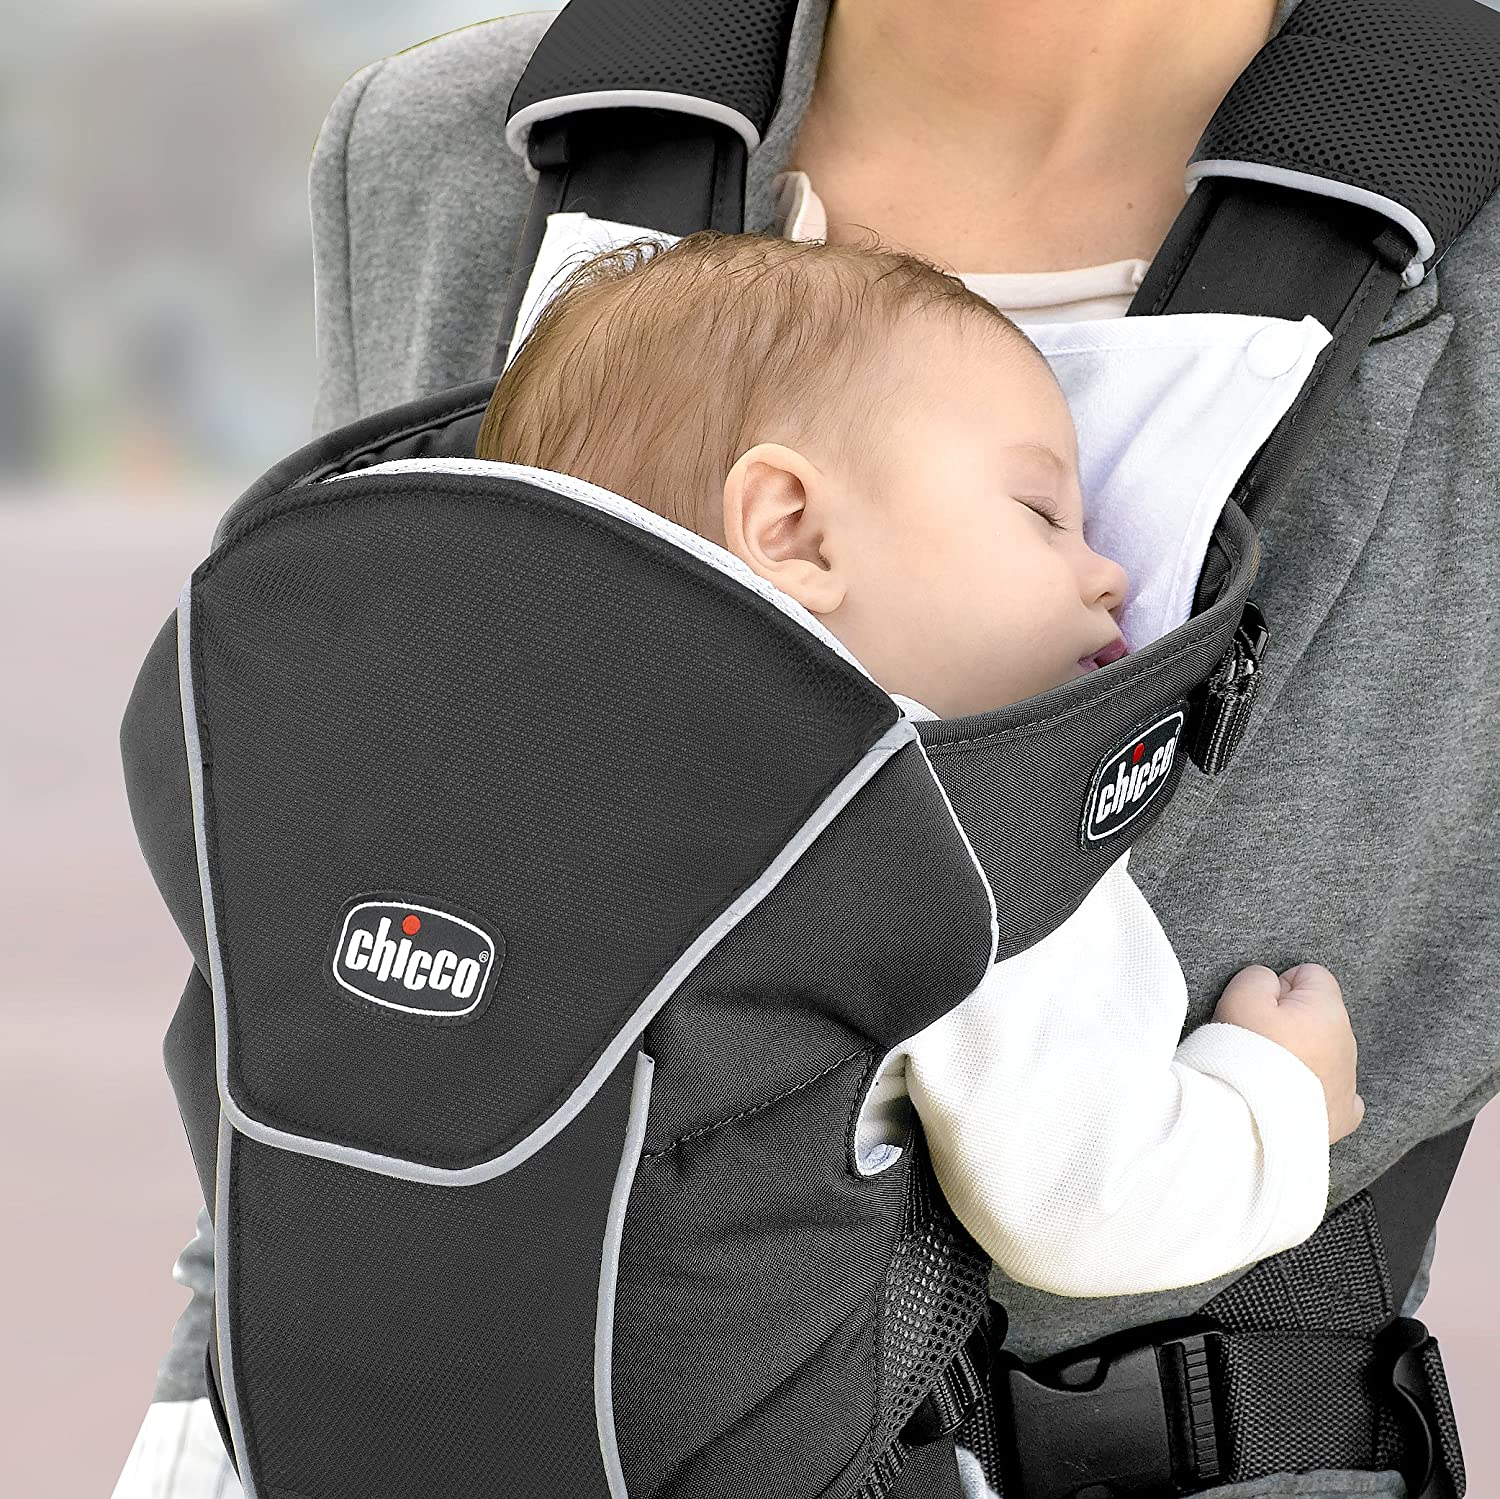 Amazon.com : Chicco Ultrasoft Magic Carrier, Infant, Black : Child